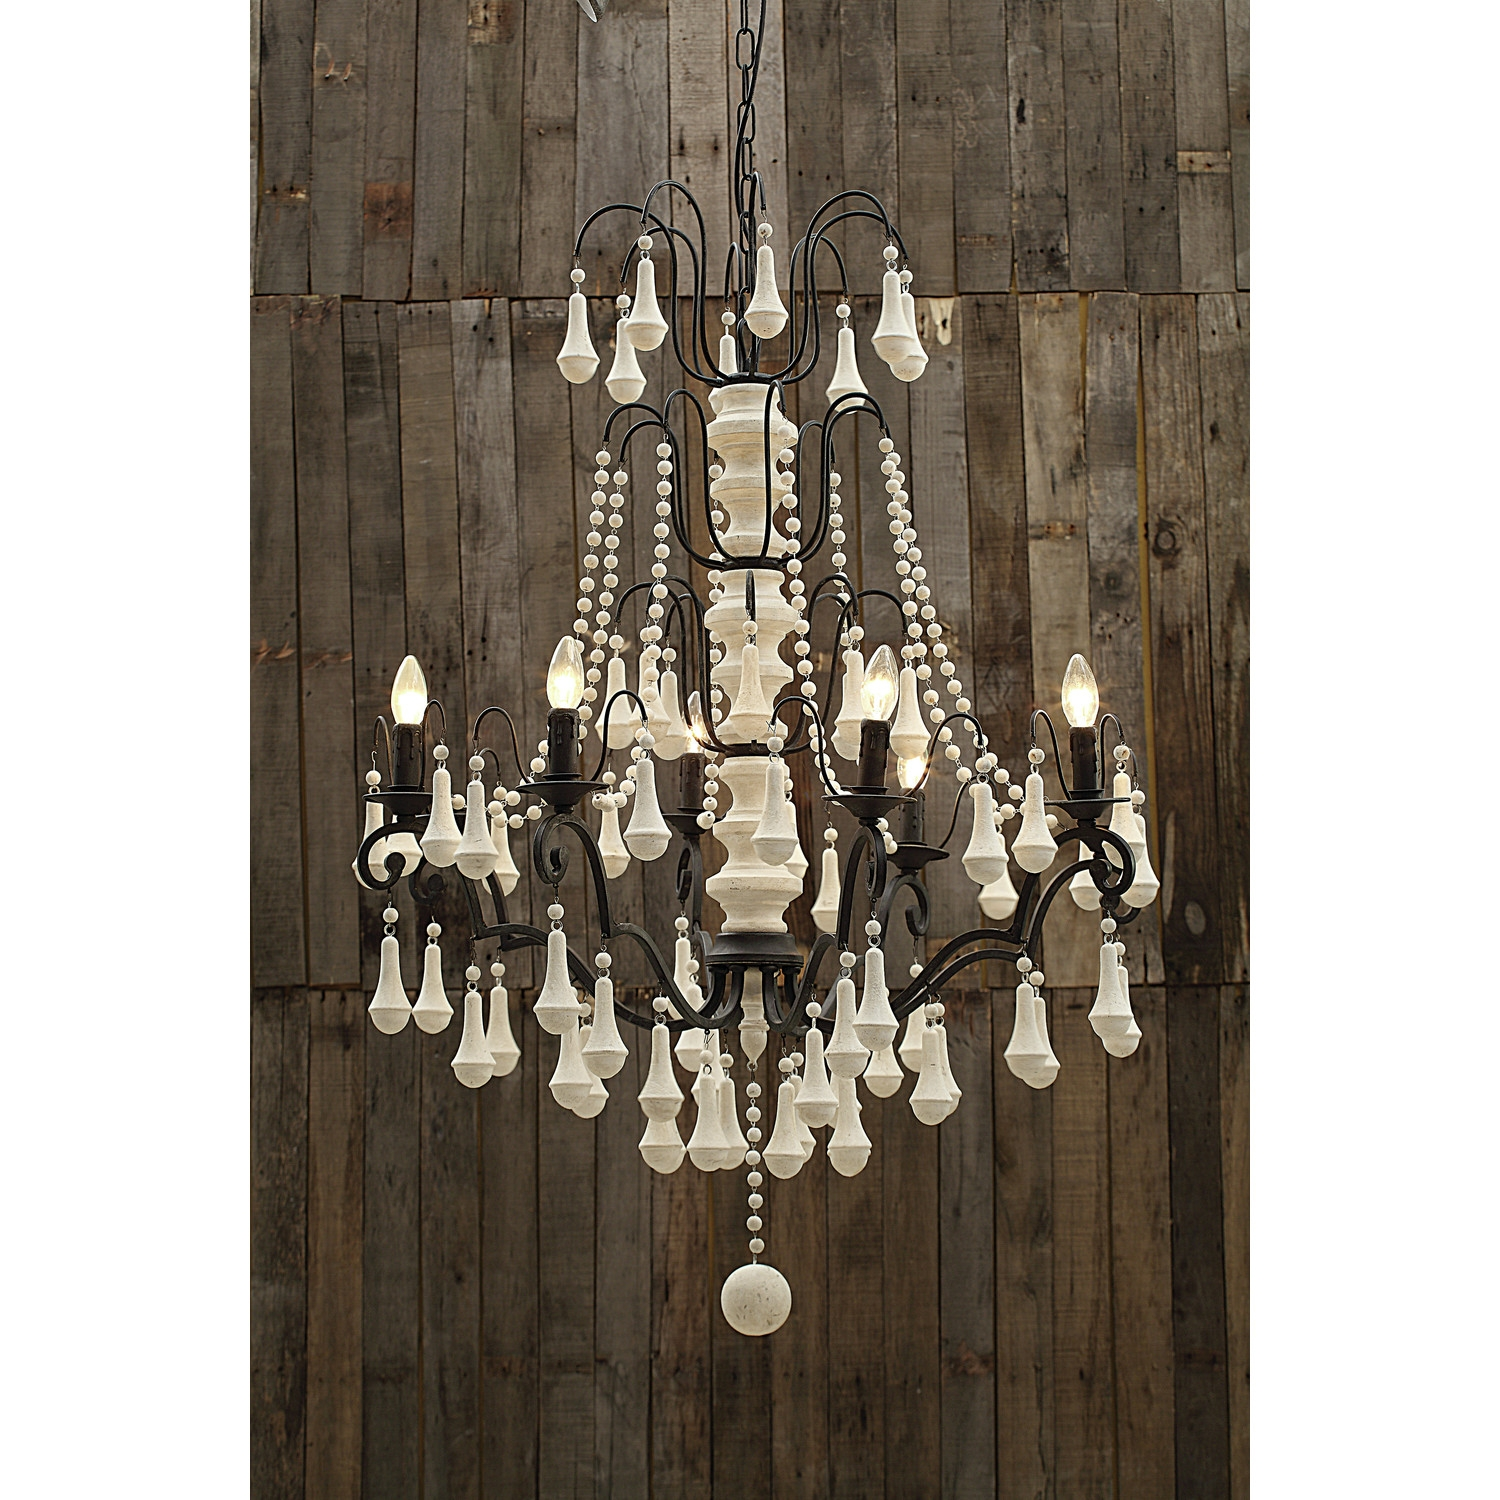 Astonishing Interior Home Accessories Design Ideas Complete Divine Within Chandelier Accessories (#3 of 12)